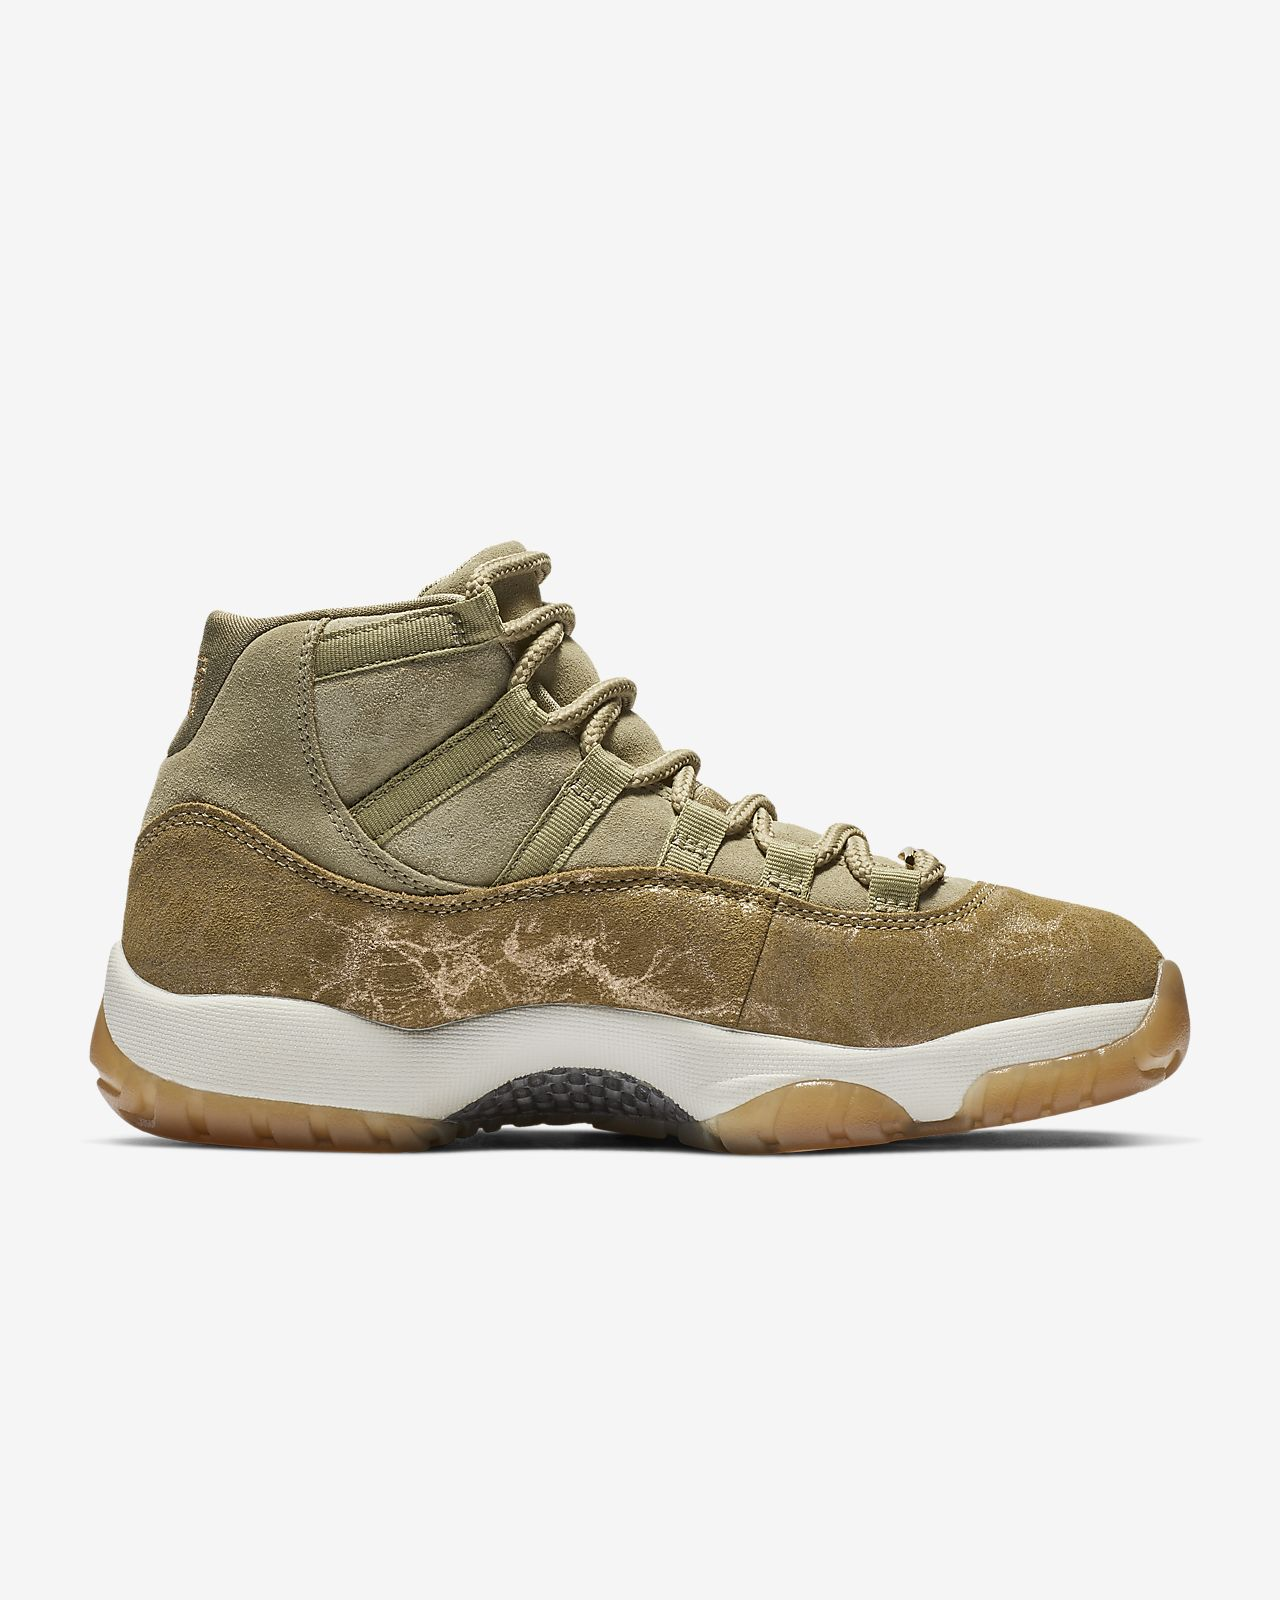 los angeles 868a5 9ebb4 Air Jordan 11 Retro Women's Shoe